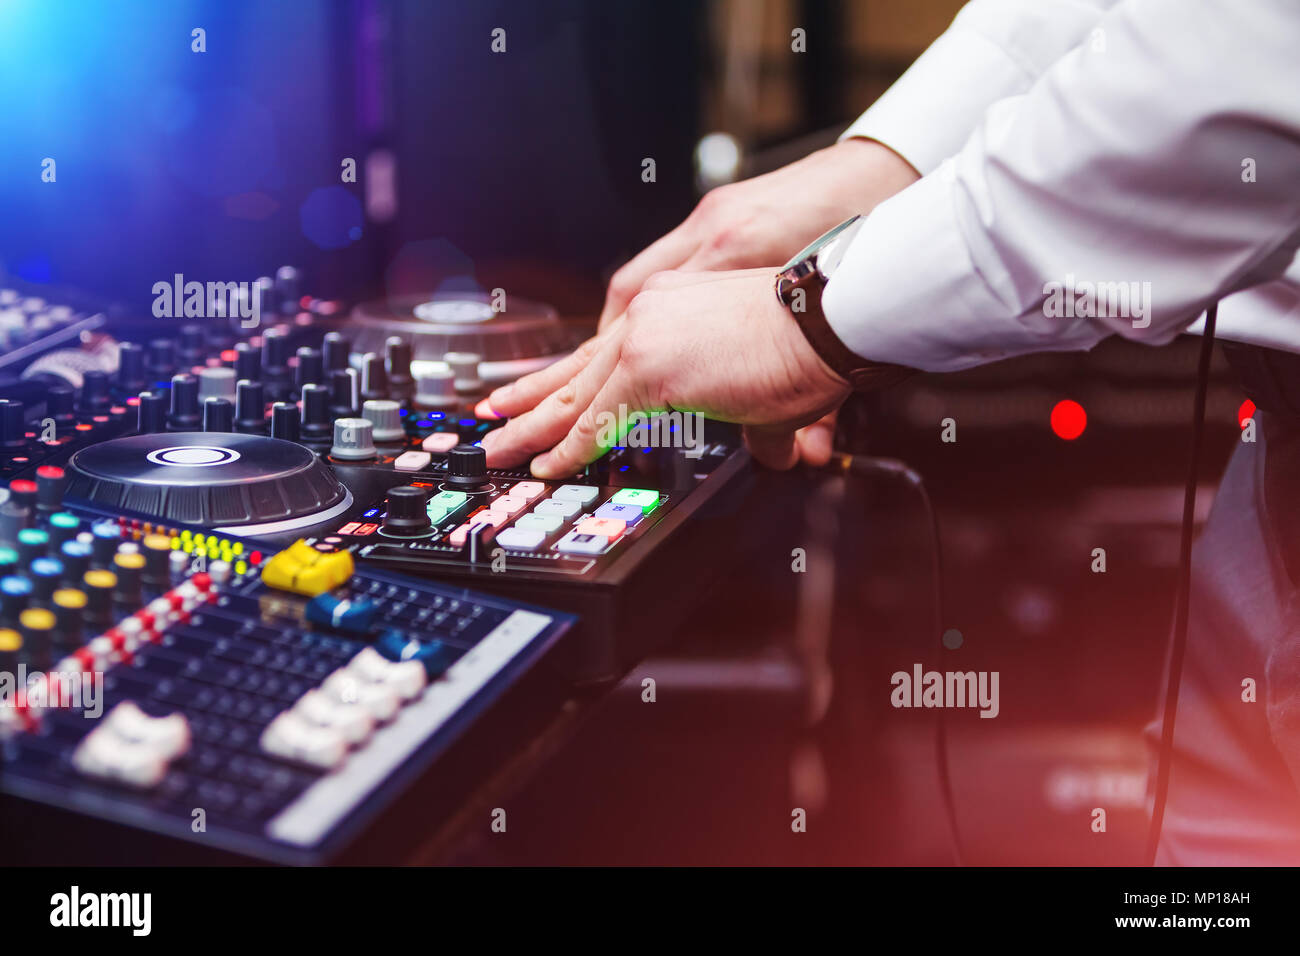 DJ playing music - Stock Image